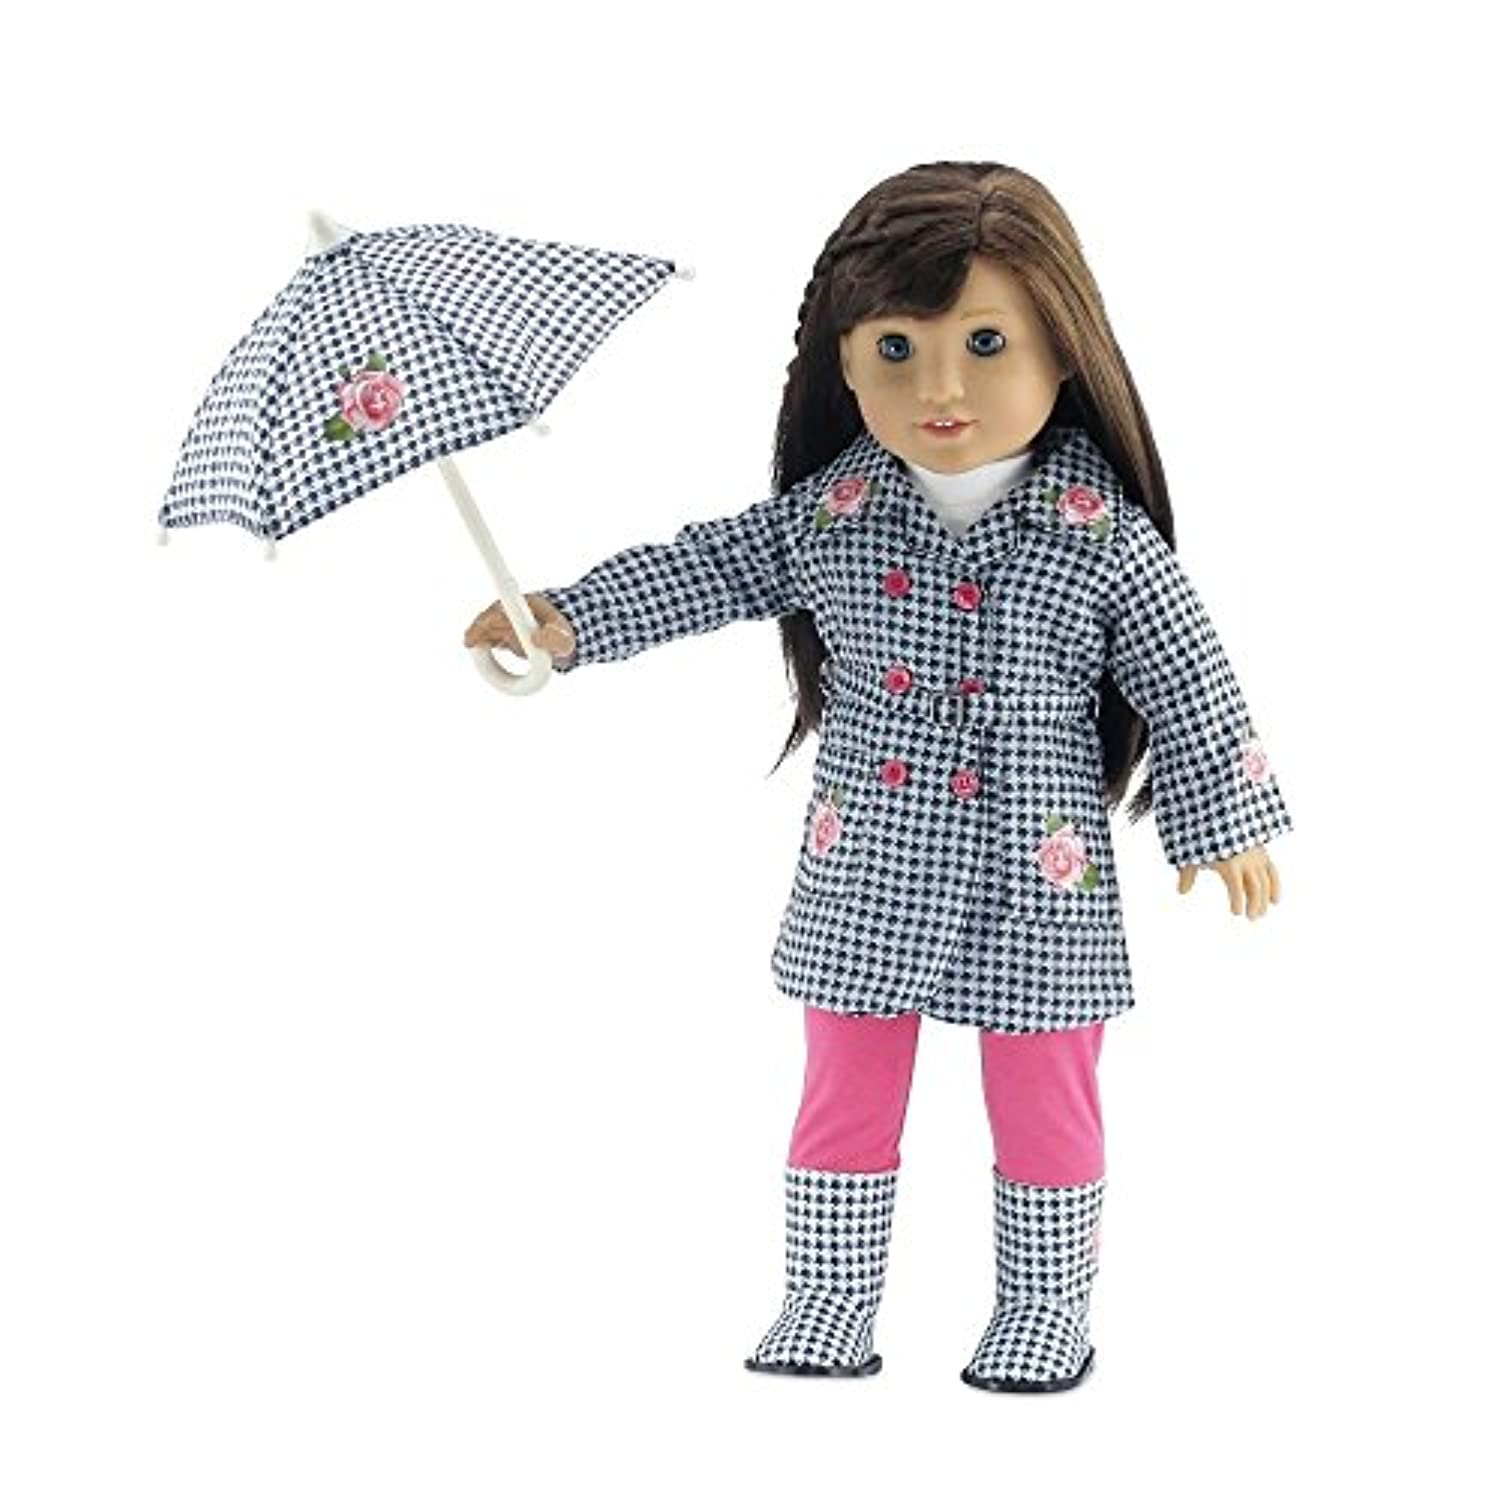 18 Inch Doll Clothes   Lovely 5-Piece Raincoat Outfit with Rose Embellishments, Including Matching Boots and Umbrella,